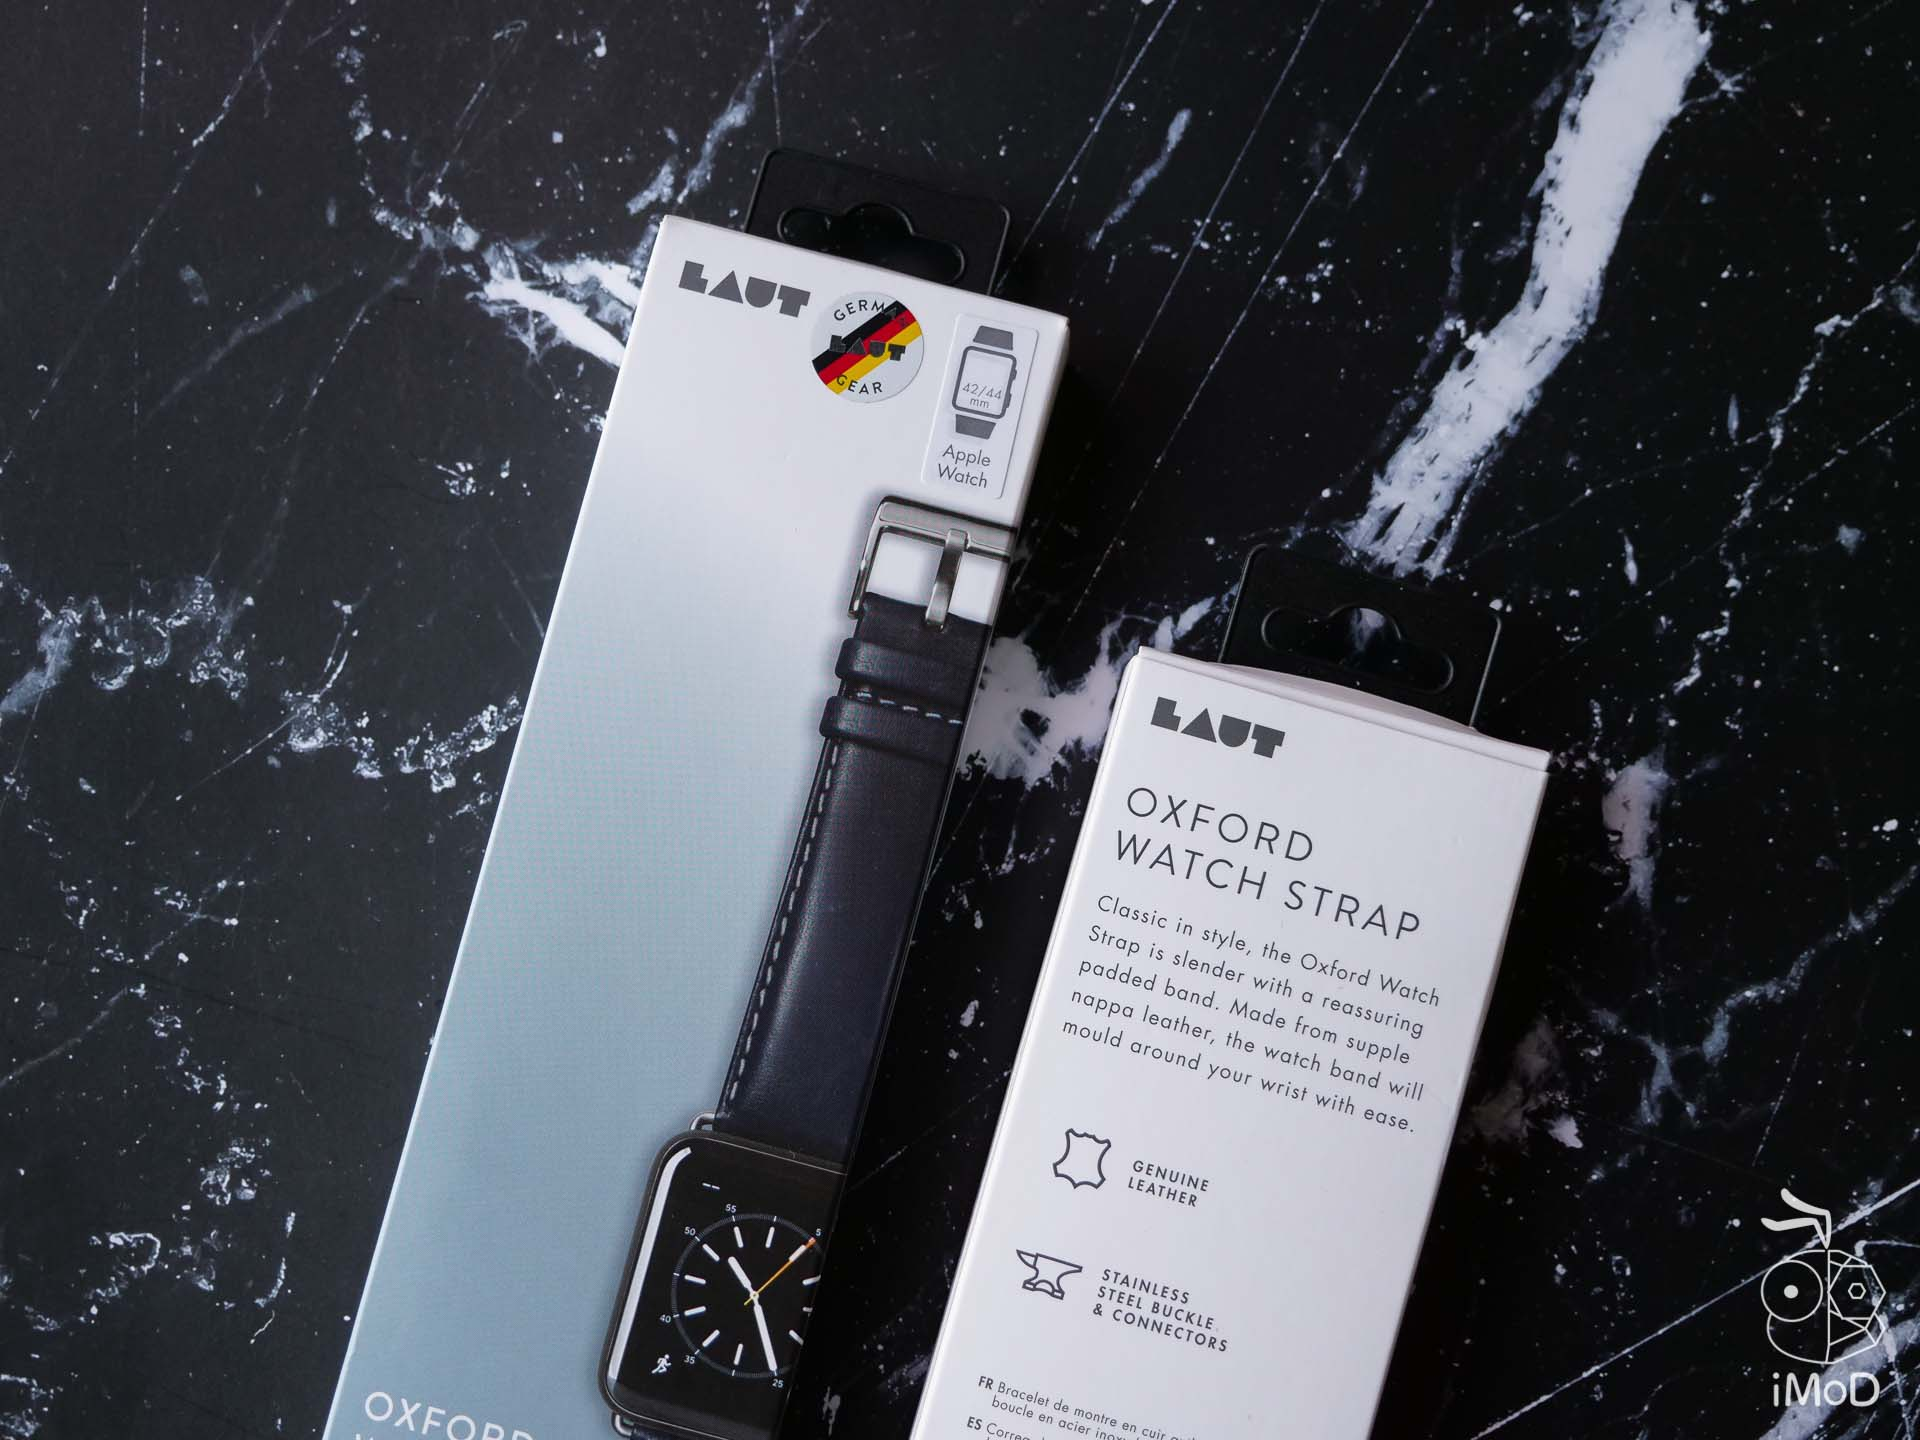 Laut Apple Watch Strap Oxford 1222727